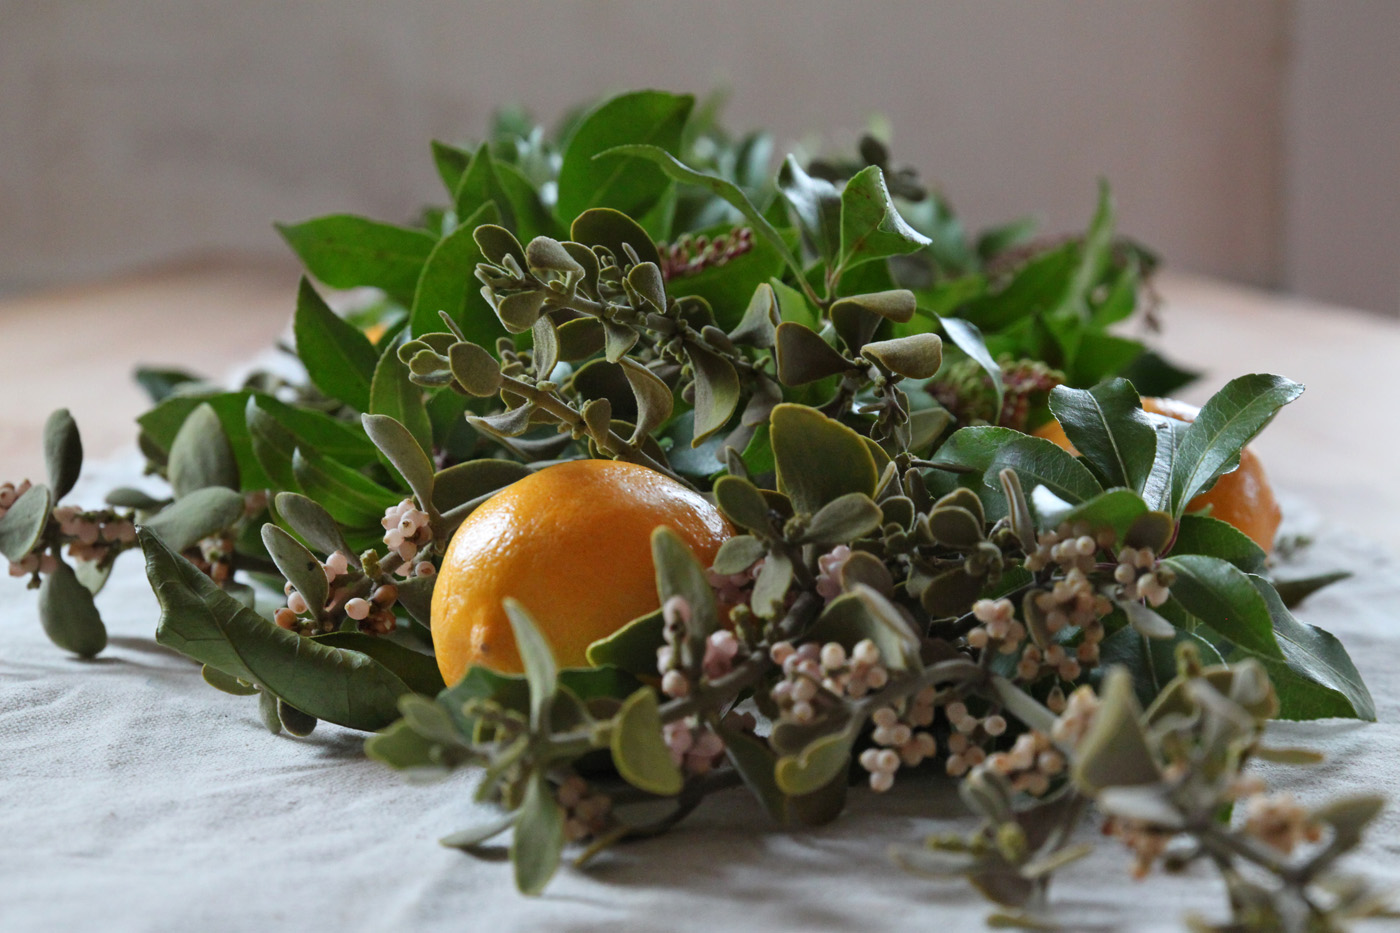 mistletoe and meyer lemon garland, finished detail 2, by Justine Hand for Remodelista